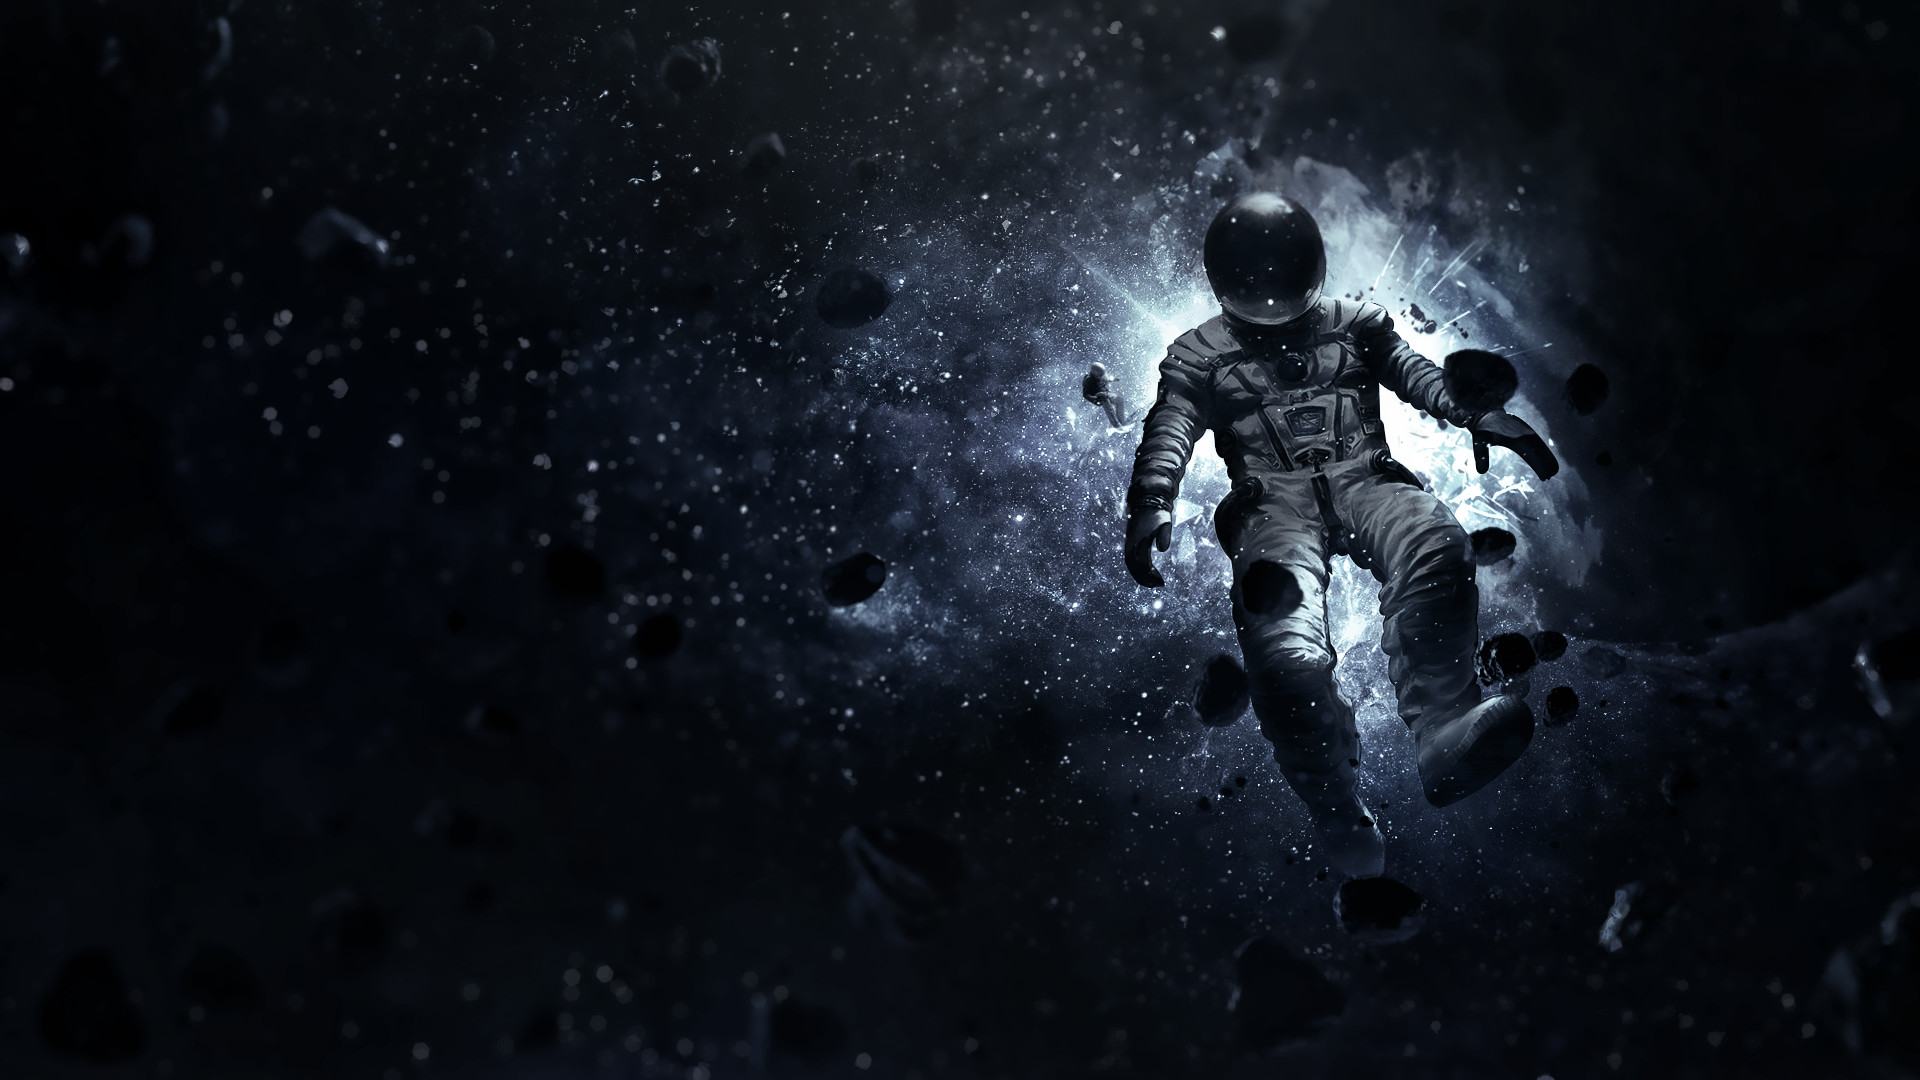 Astronaut Wallpaper (78+ Images